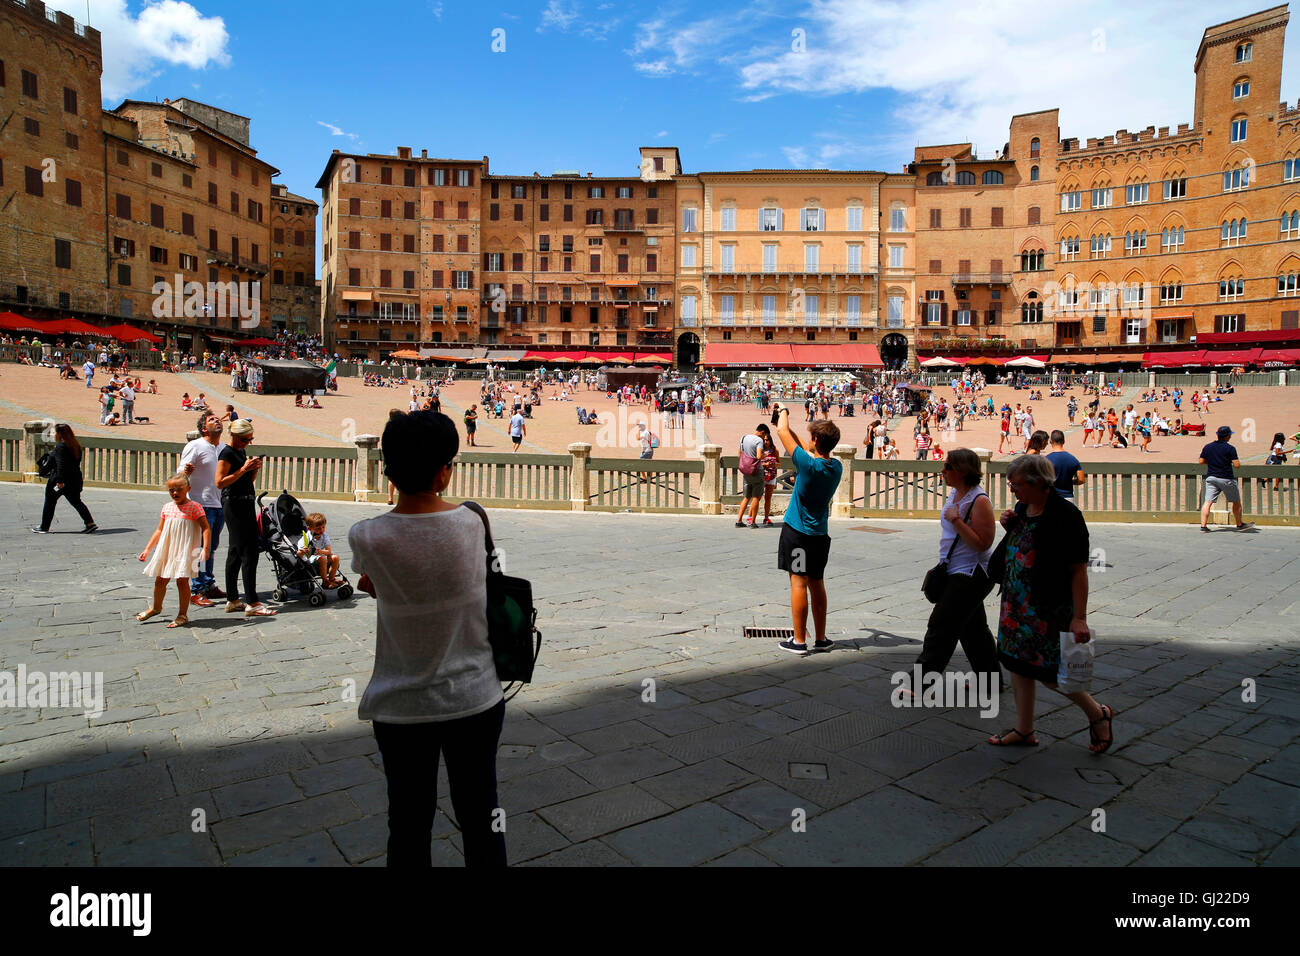 Tourists on the Piazza del Campo, famous for the Il Palio horse race, in Siena, Italy - Stock Image